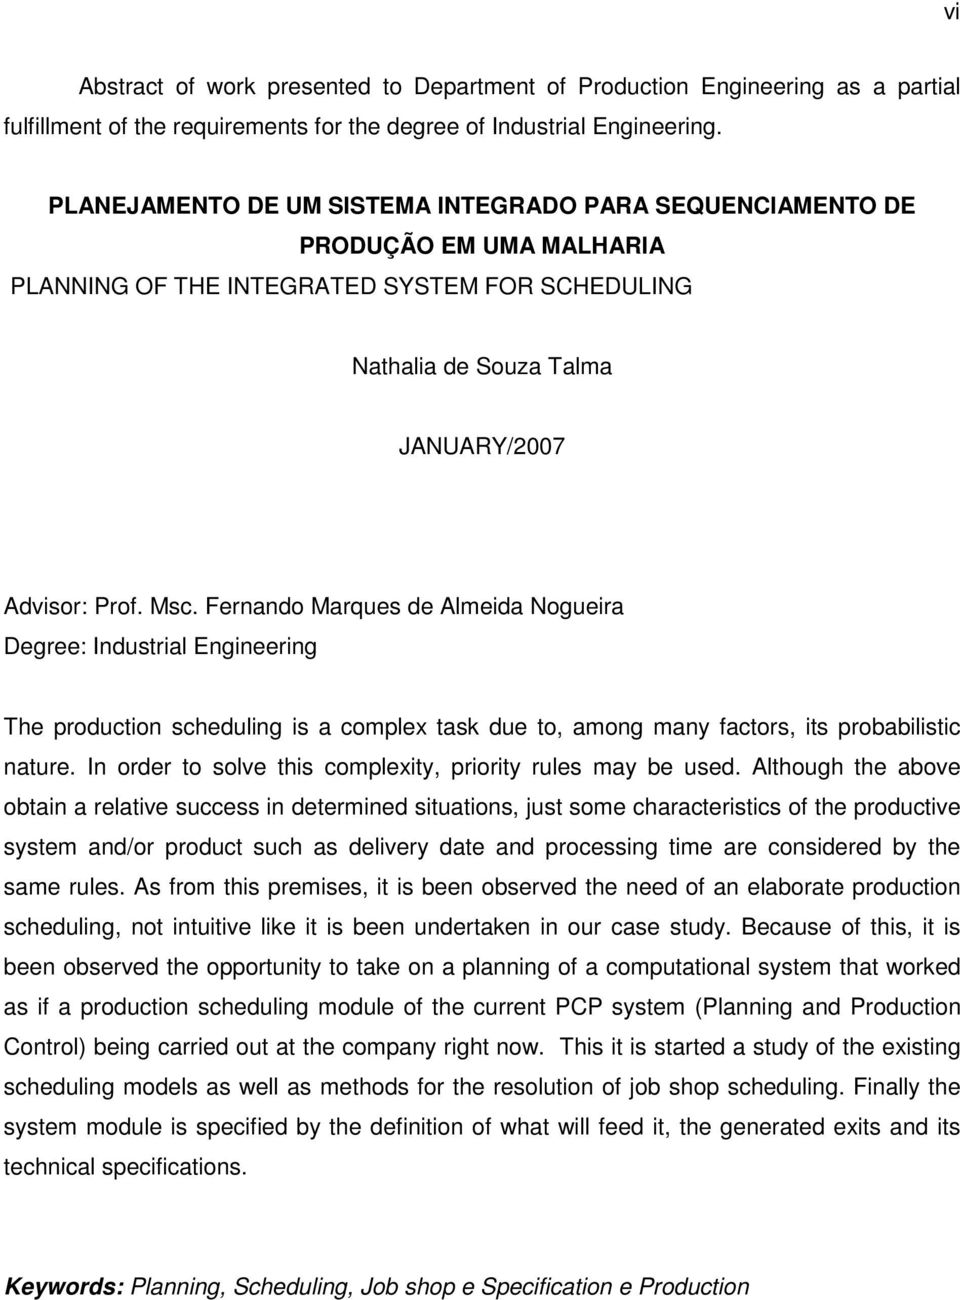 Fernando Marques de Almeida Nogueira Degree: Industrial Engineering The production scheduling is a complex task due to, among many factors, its probabilistic nature.